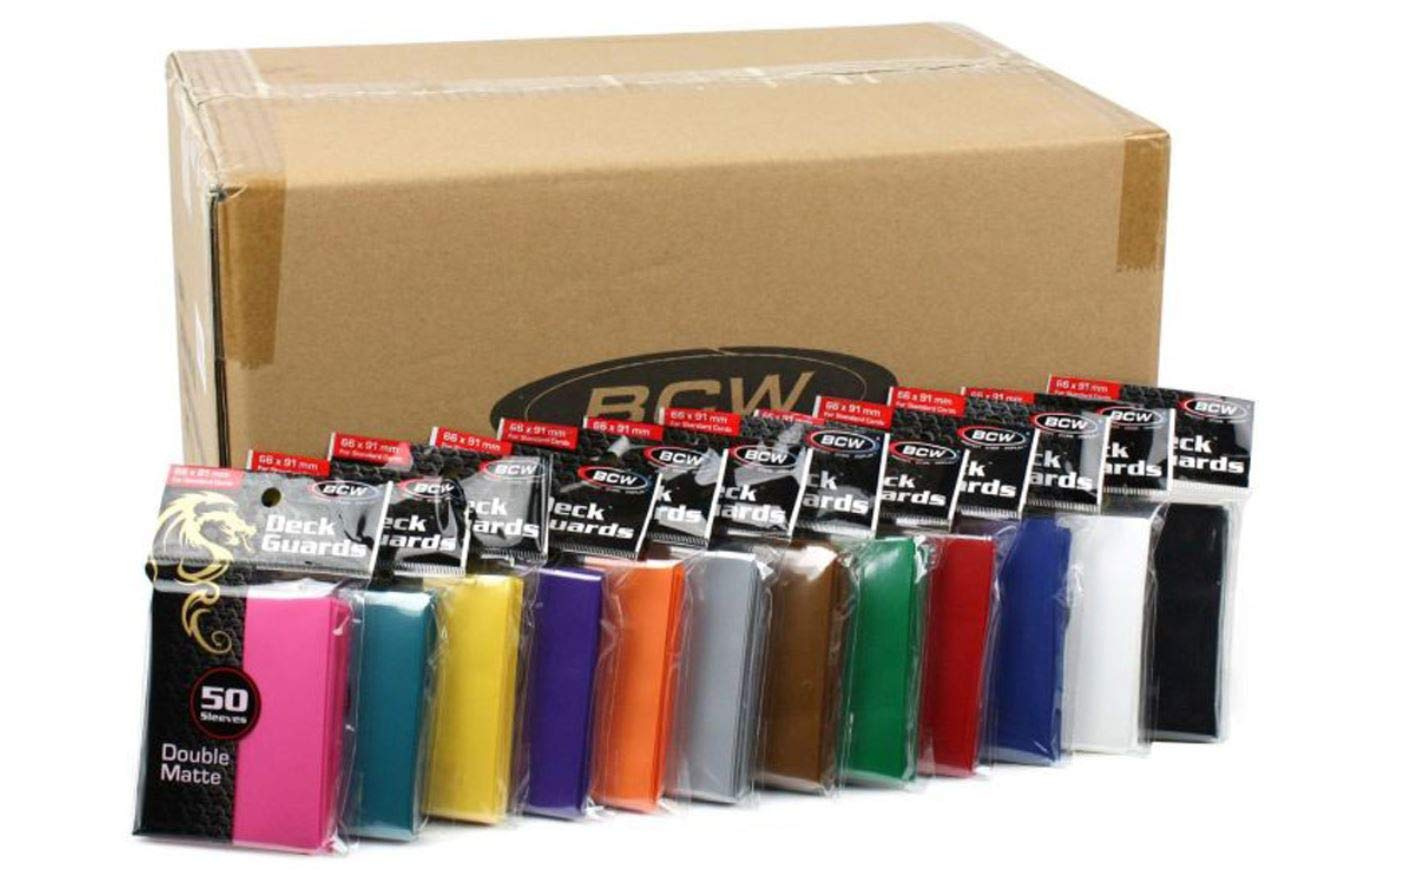 Mixed Case of BCW Double Matte Deck Guards - 12 Boxes (Each a diff Color) of Ten 50ct Packs (6,000 Sleeves Total)